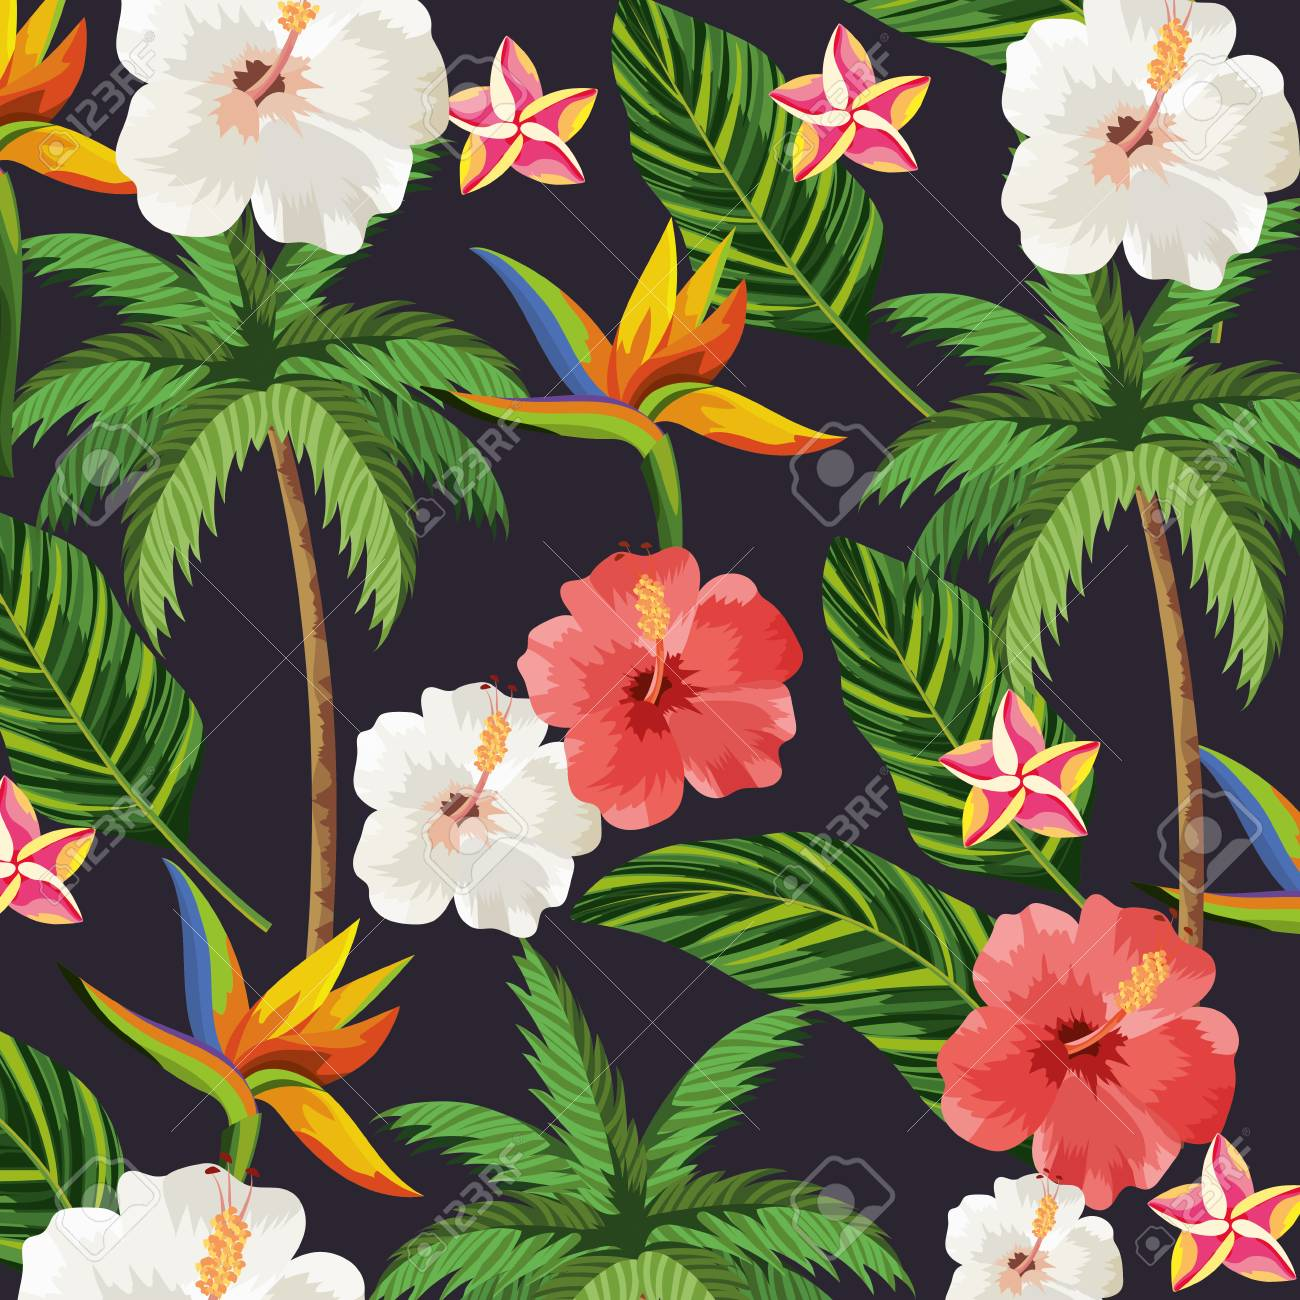 tropical flowers plants with leaves and plam background vector illustration - 124610829